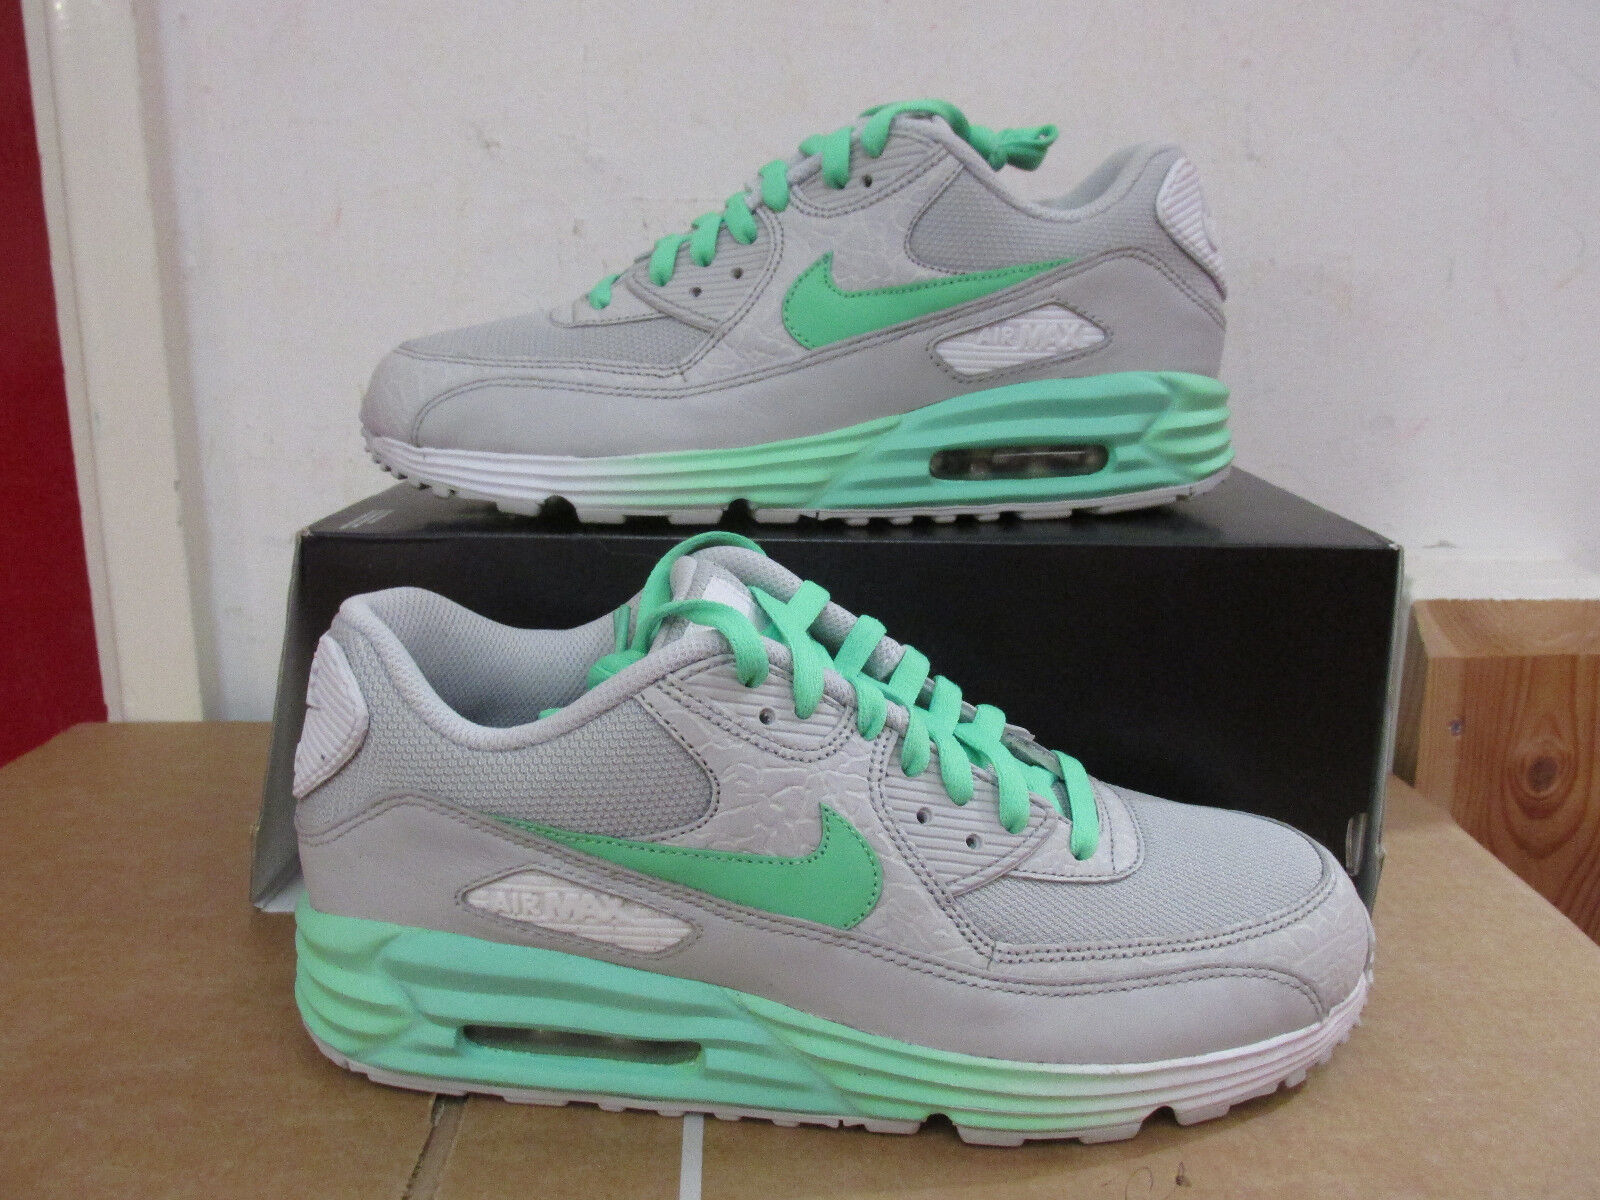 dbe7b1e4653 Nike ID Mens air max 90 lunar trainers 653534 653534 653534 991 Sneakers us  8.5 eu